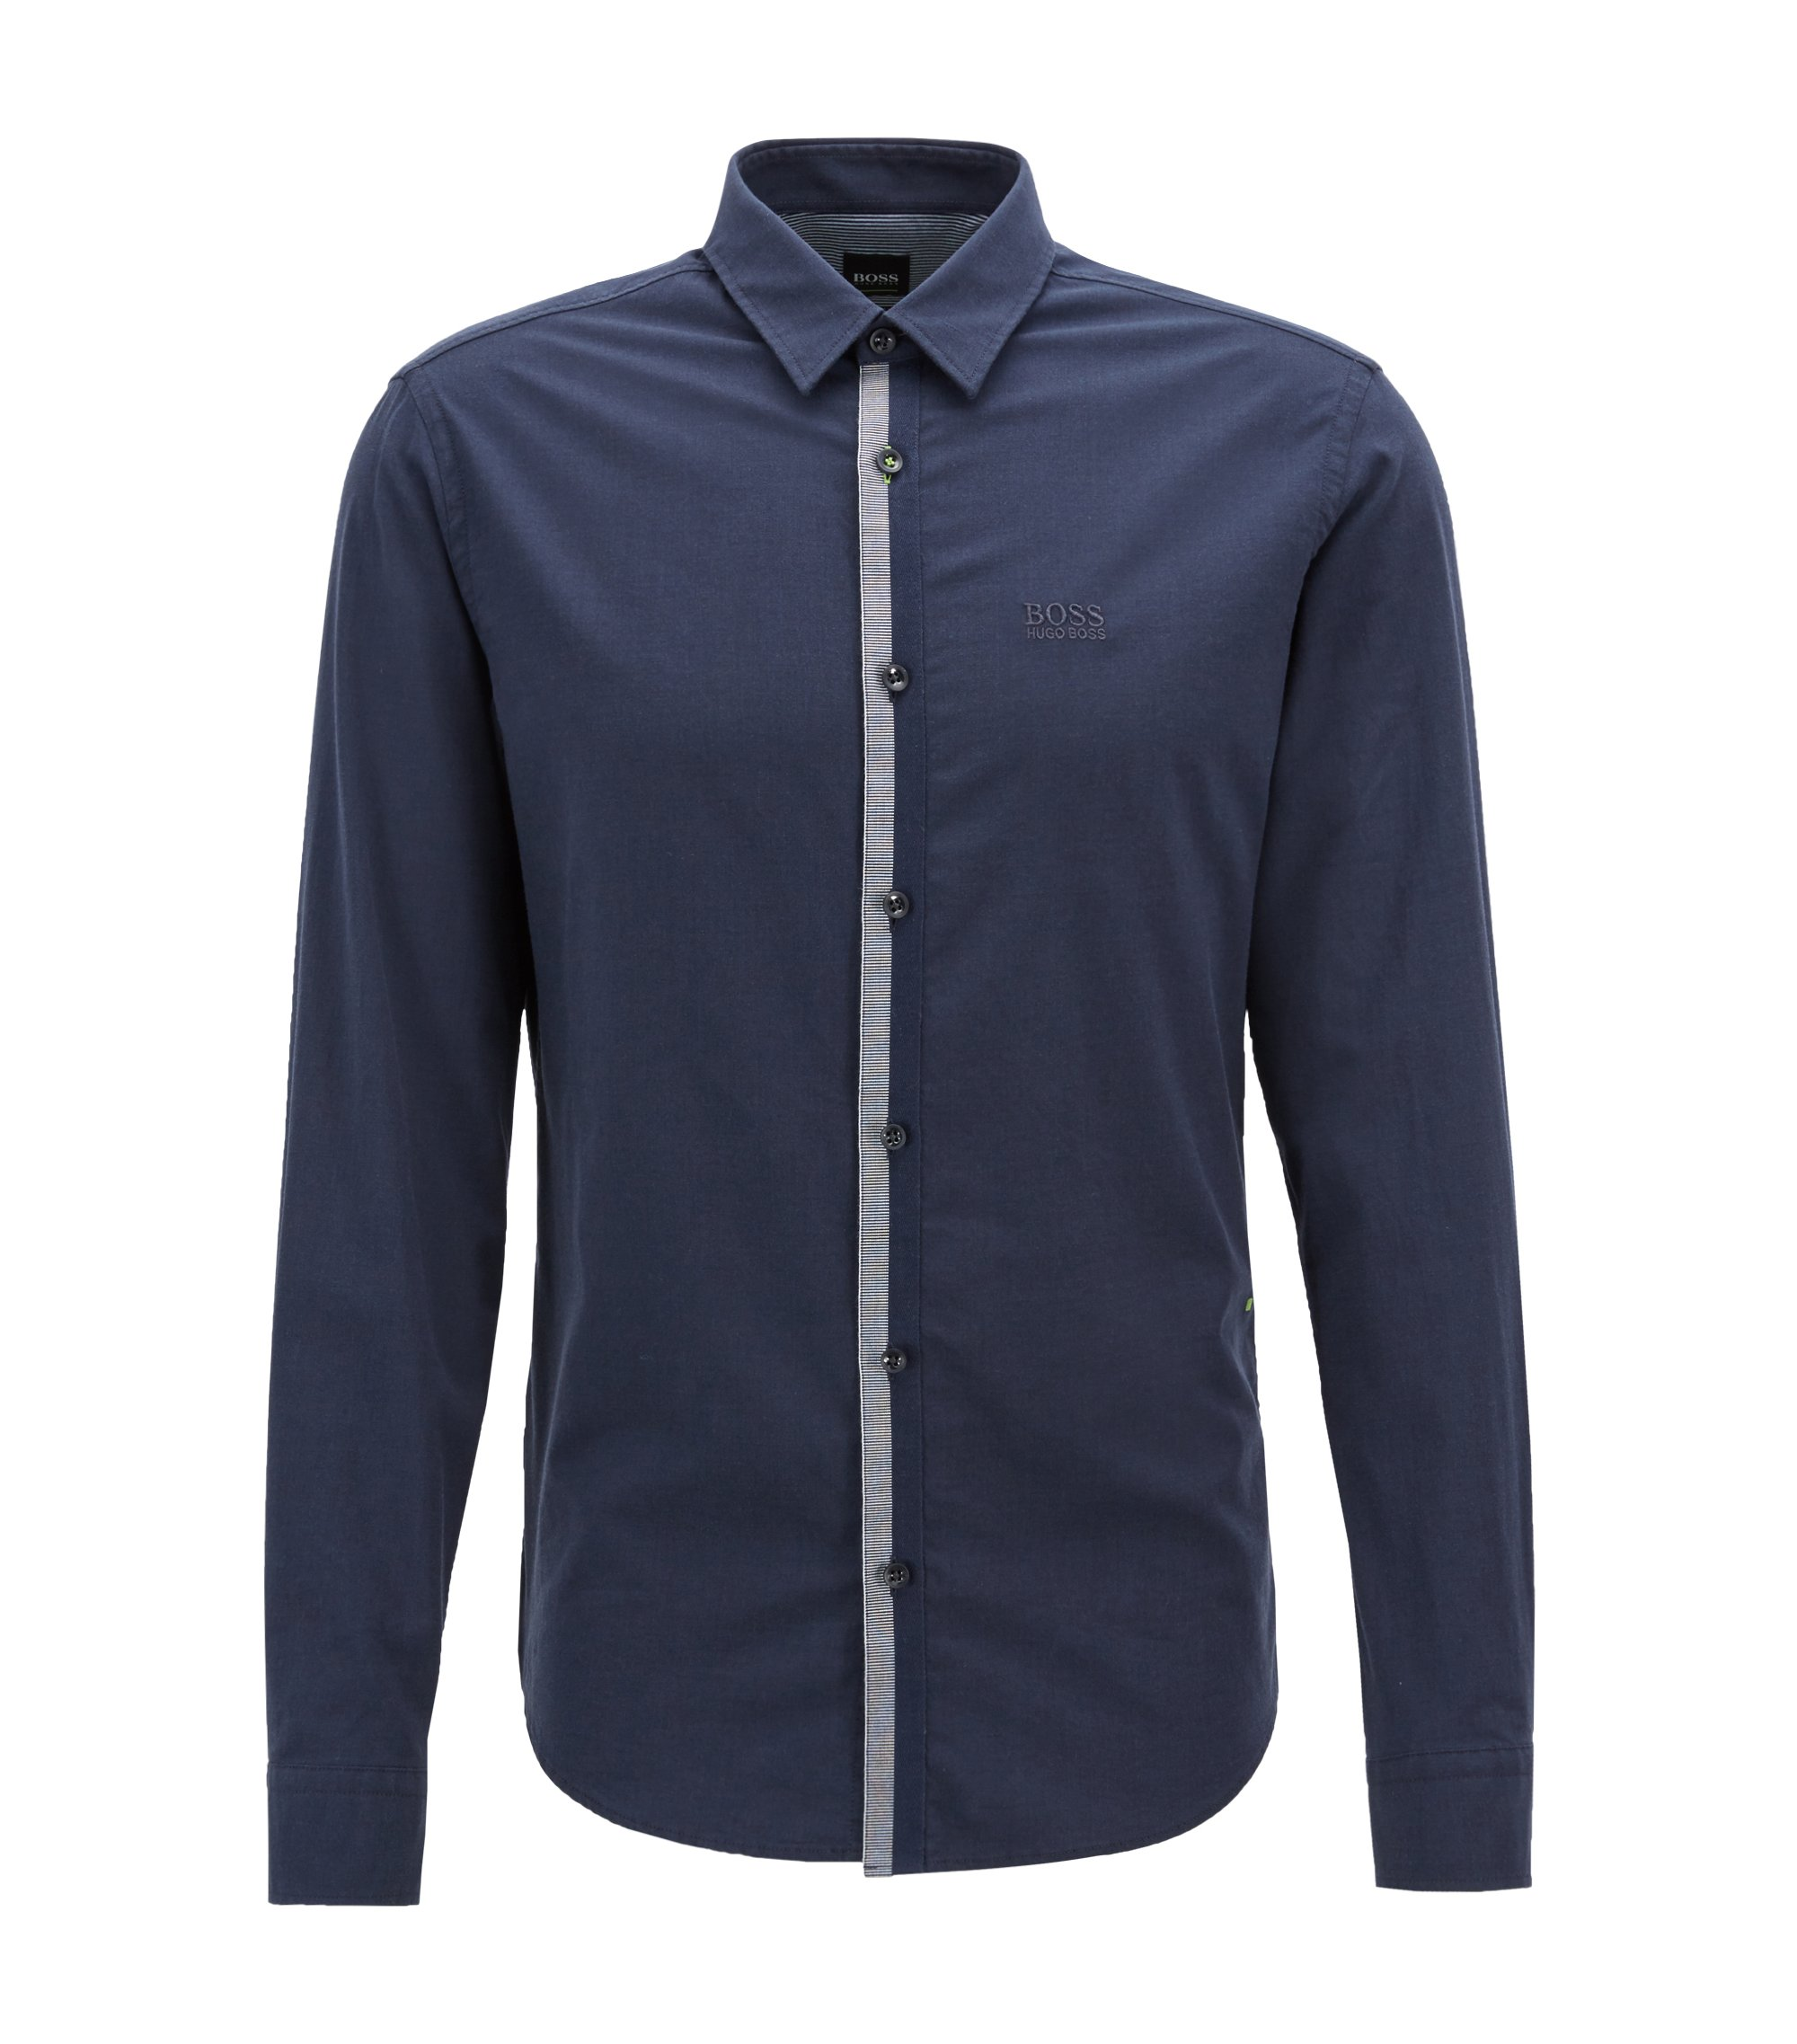 Camicia regular fit in twill di cotone mélange elasticizzato, Blu scuro